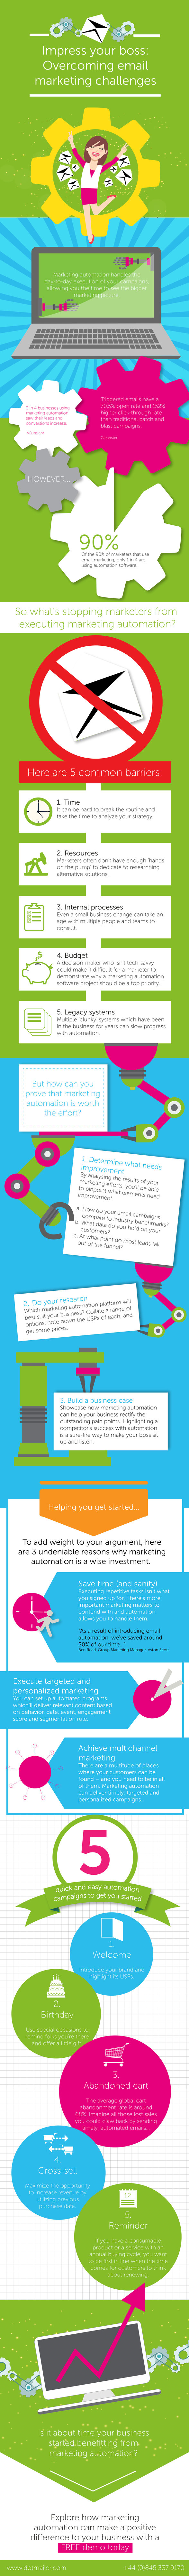 Marketing Automation Infographic Prospects